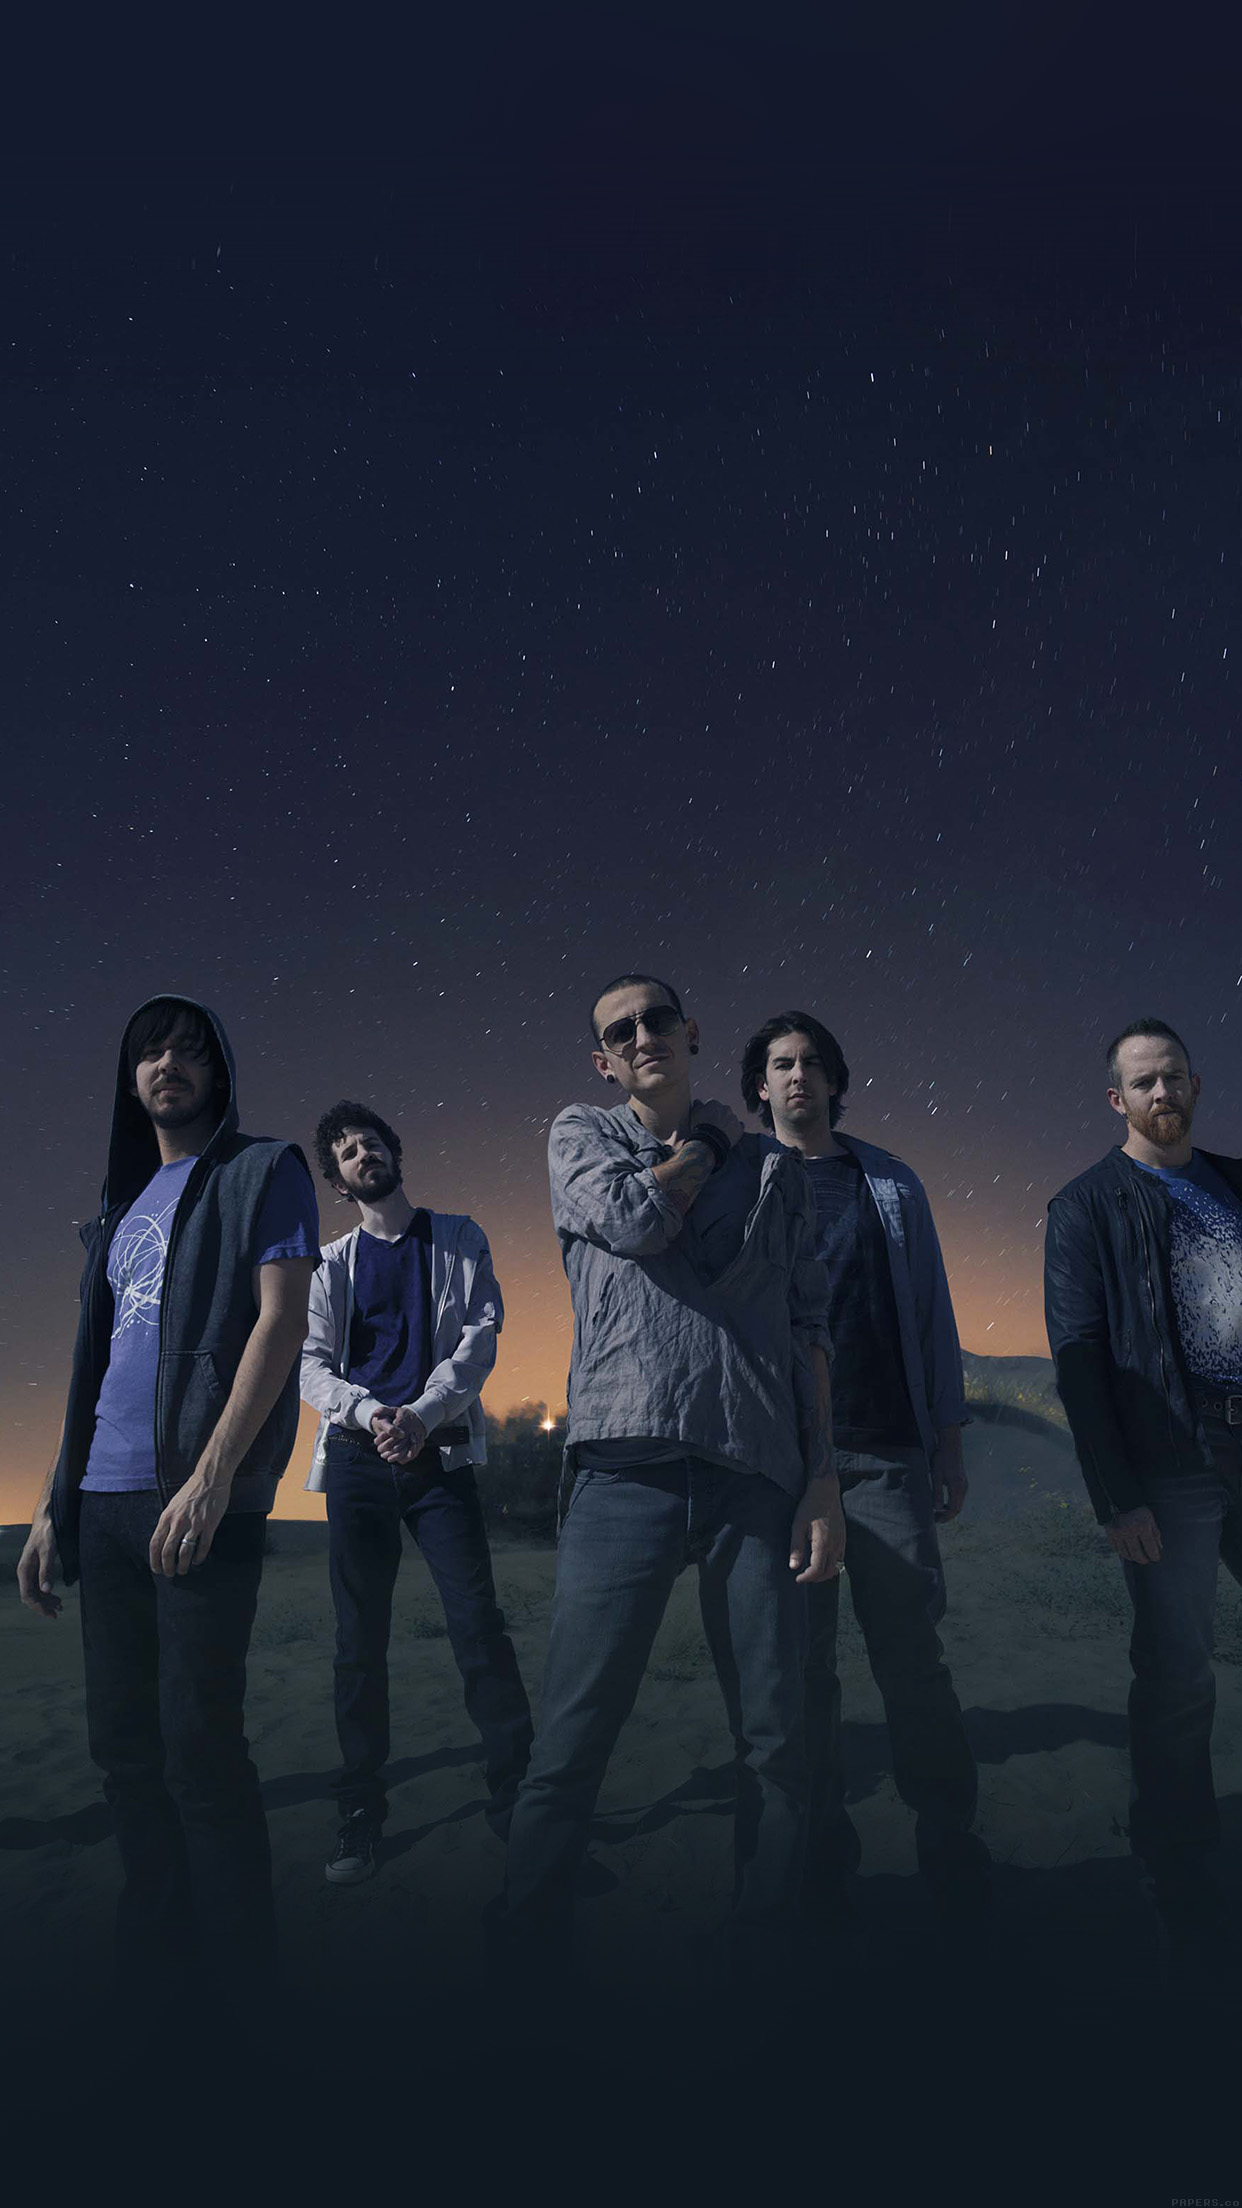 Linkin Park Space Music Stars Celebrity Android wallpaper